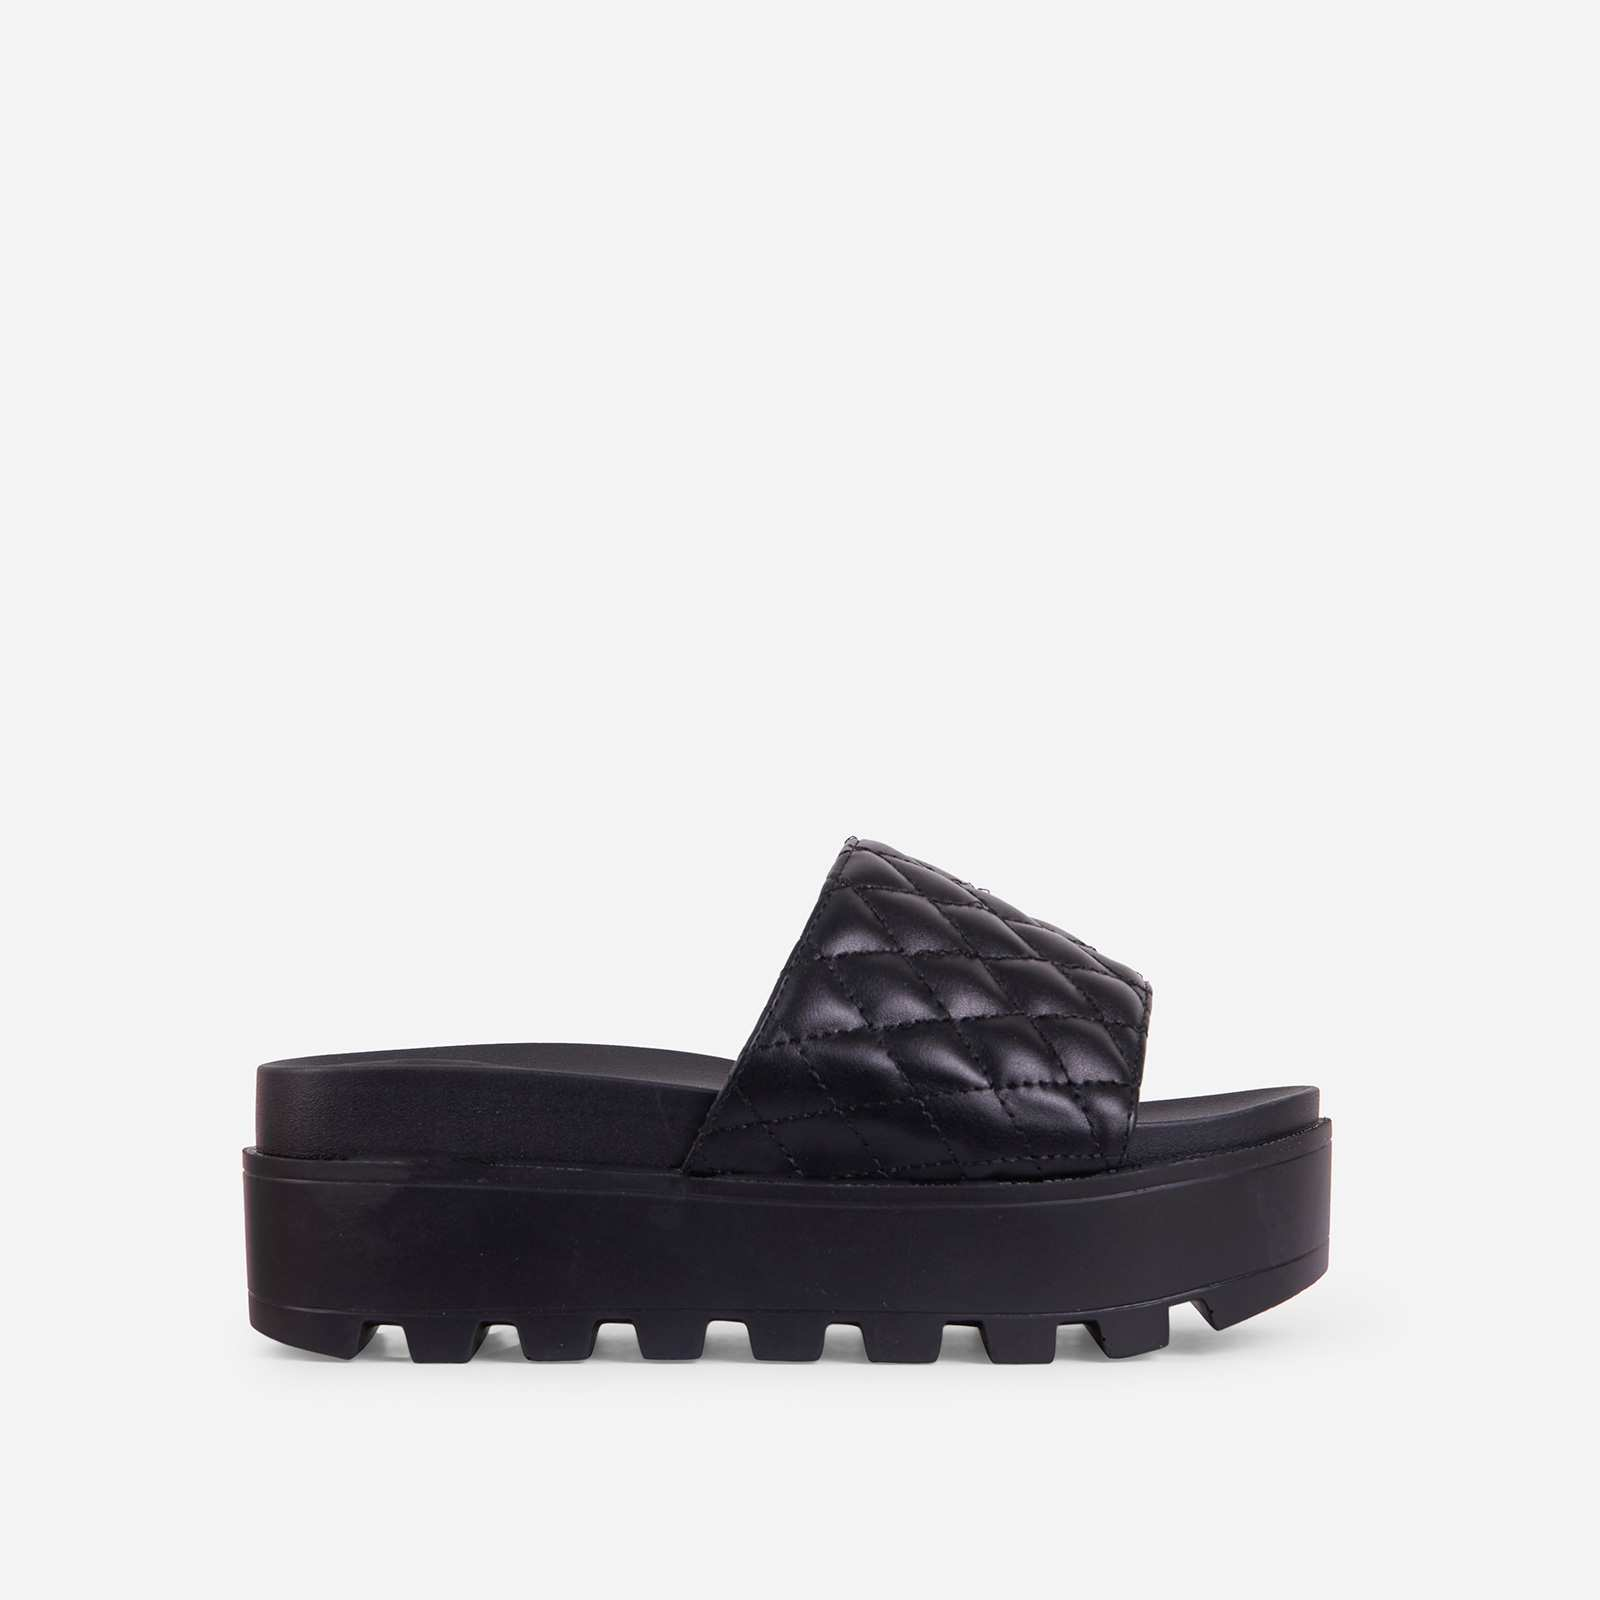 Five-Star Quilted Chunky Sole Platform Flat Slider Sandal In Black Faux Leather